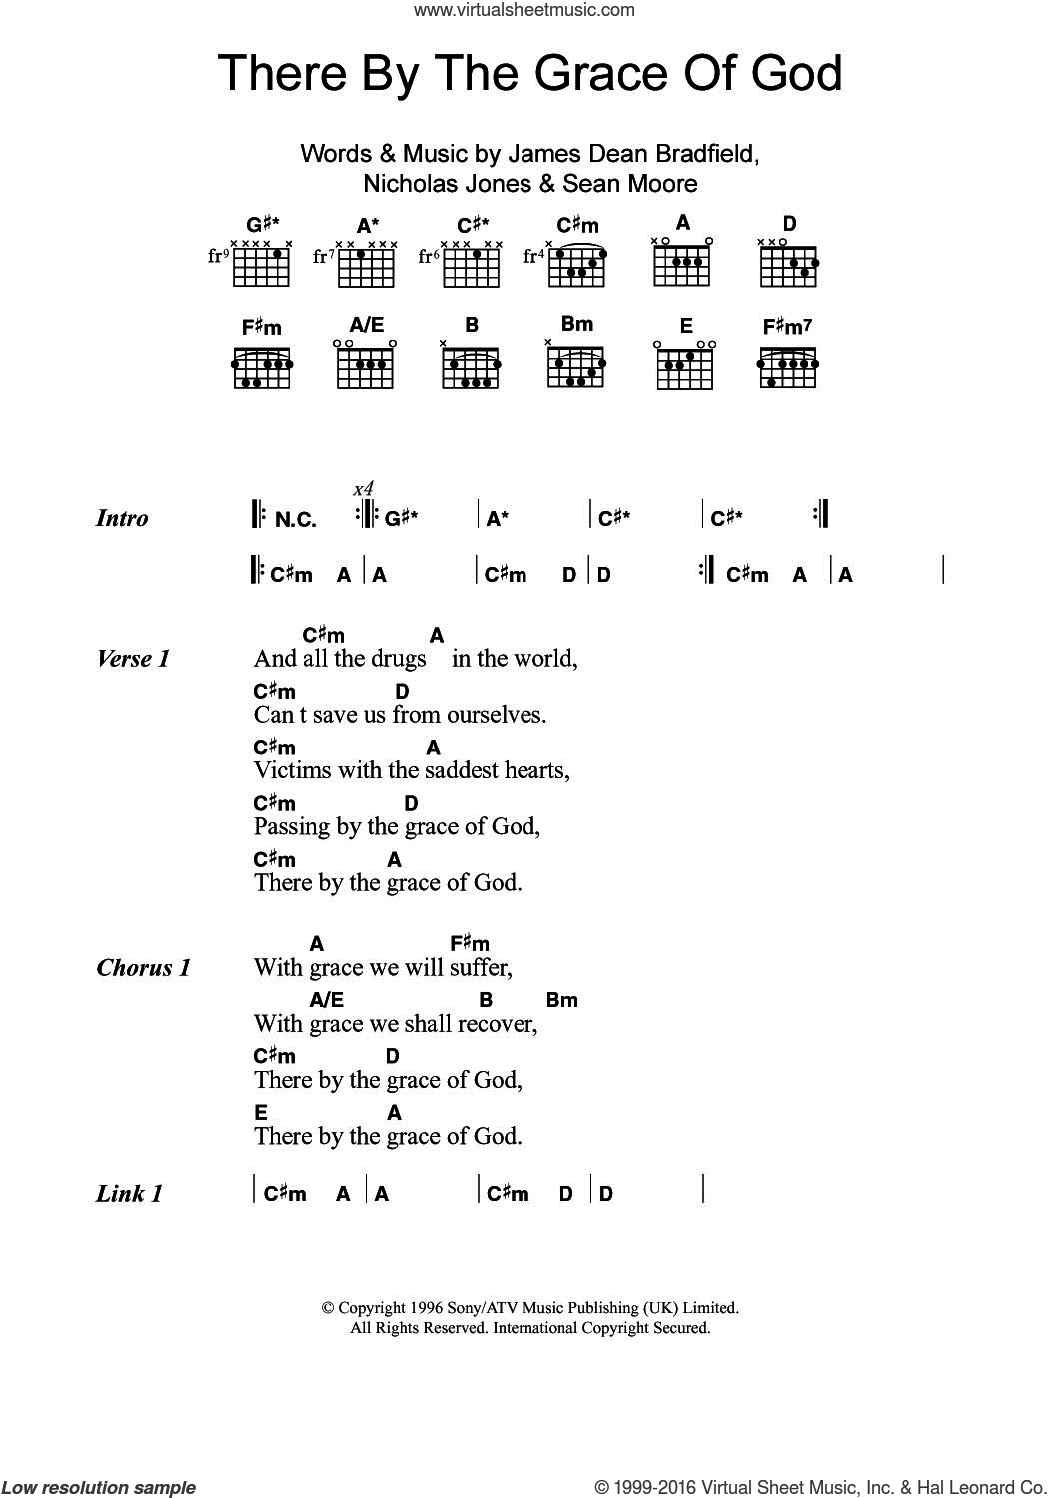 There By The Grace Of God sheet music for guitar (chords) by Manic Street Preachers, James Dean Bradfield, Nick Jones and Sean Moore, intermediate. Score Image Preview.